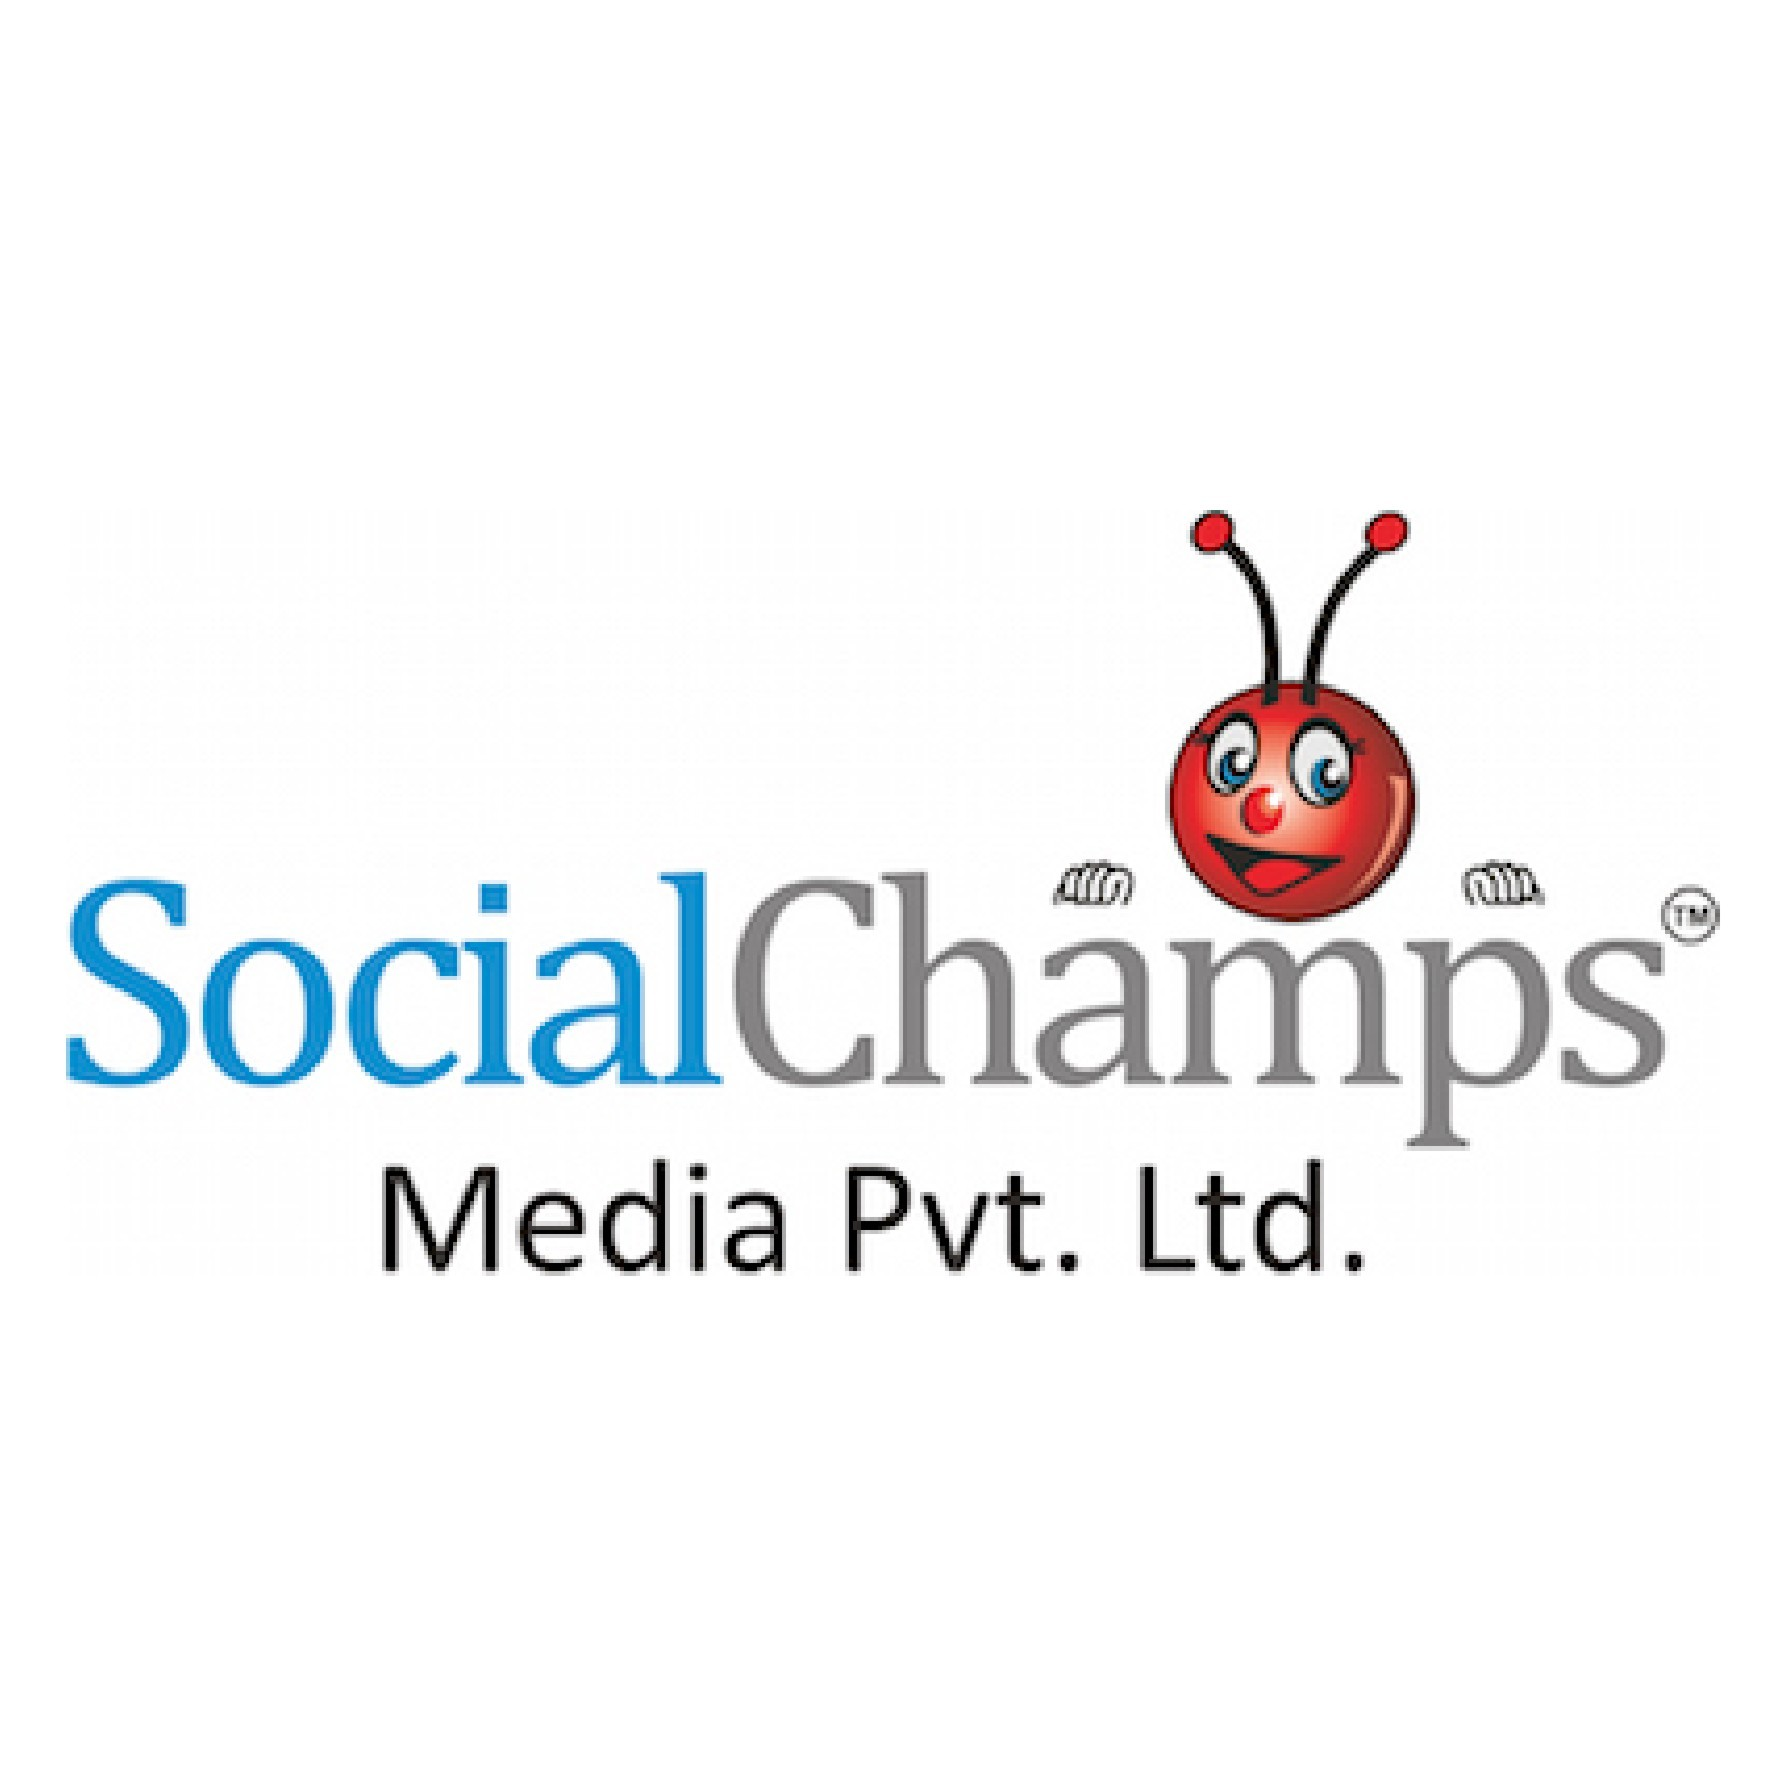 SocialChamps Media Pvt.Ltd